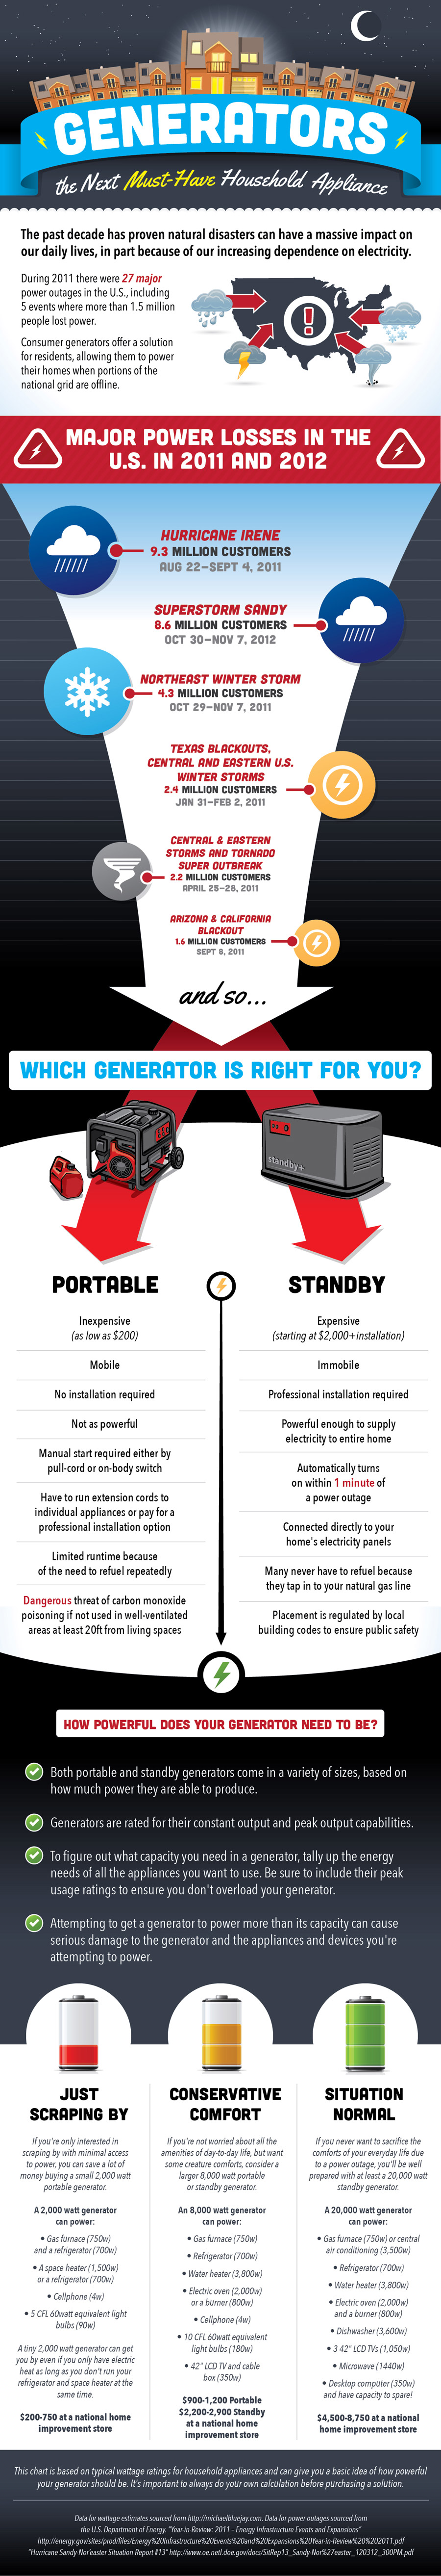 Generators: A Must-Have Household Appliance